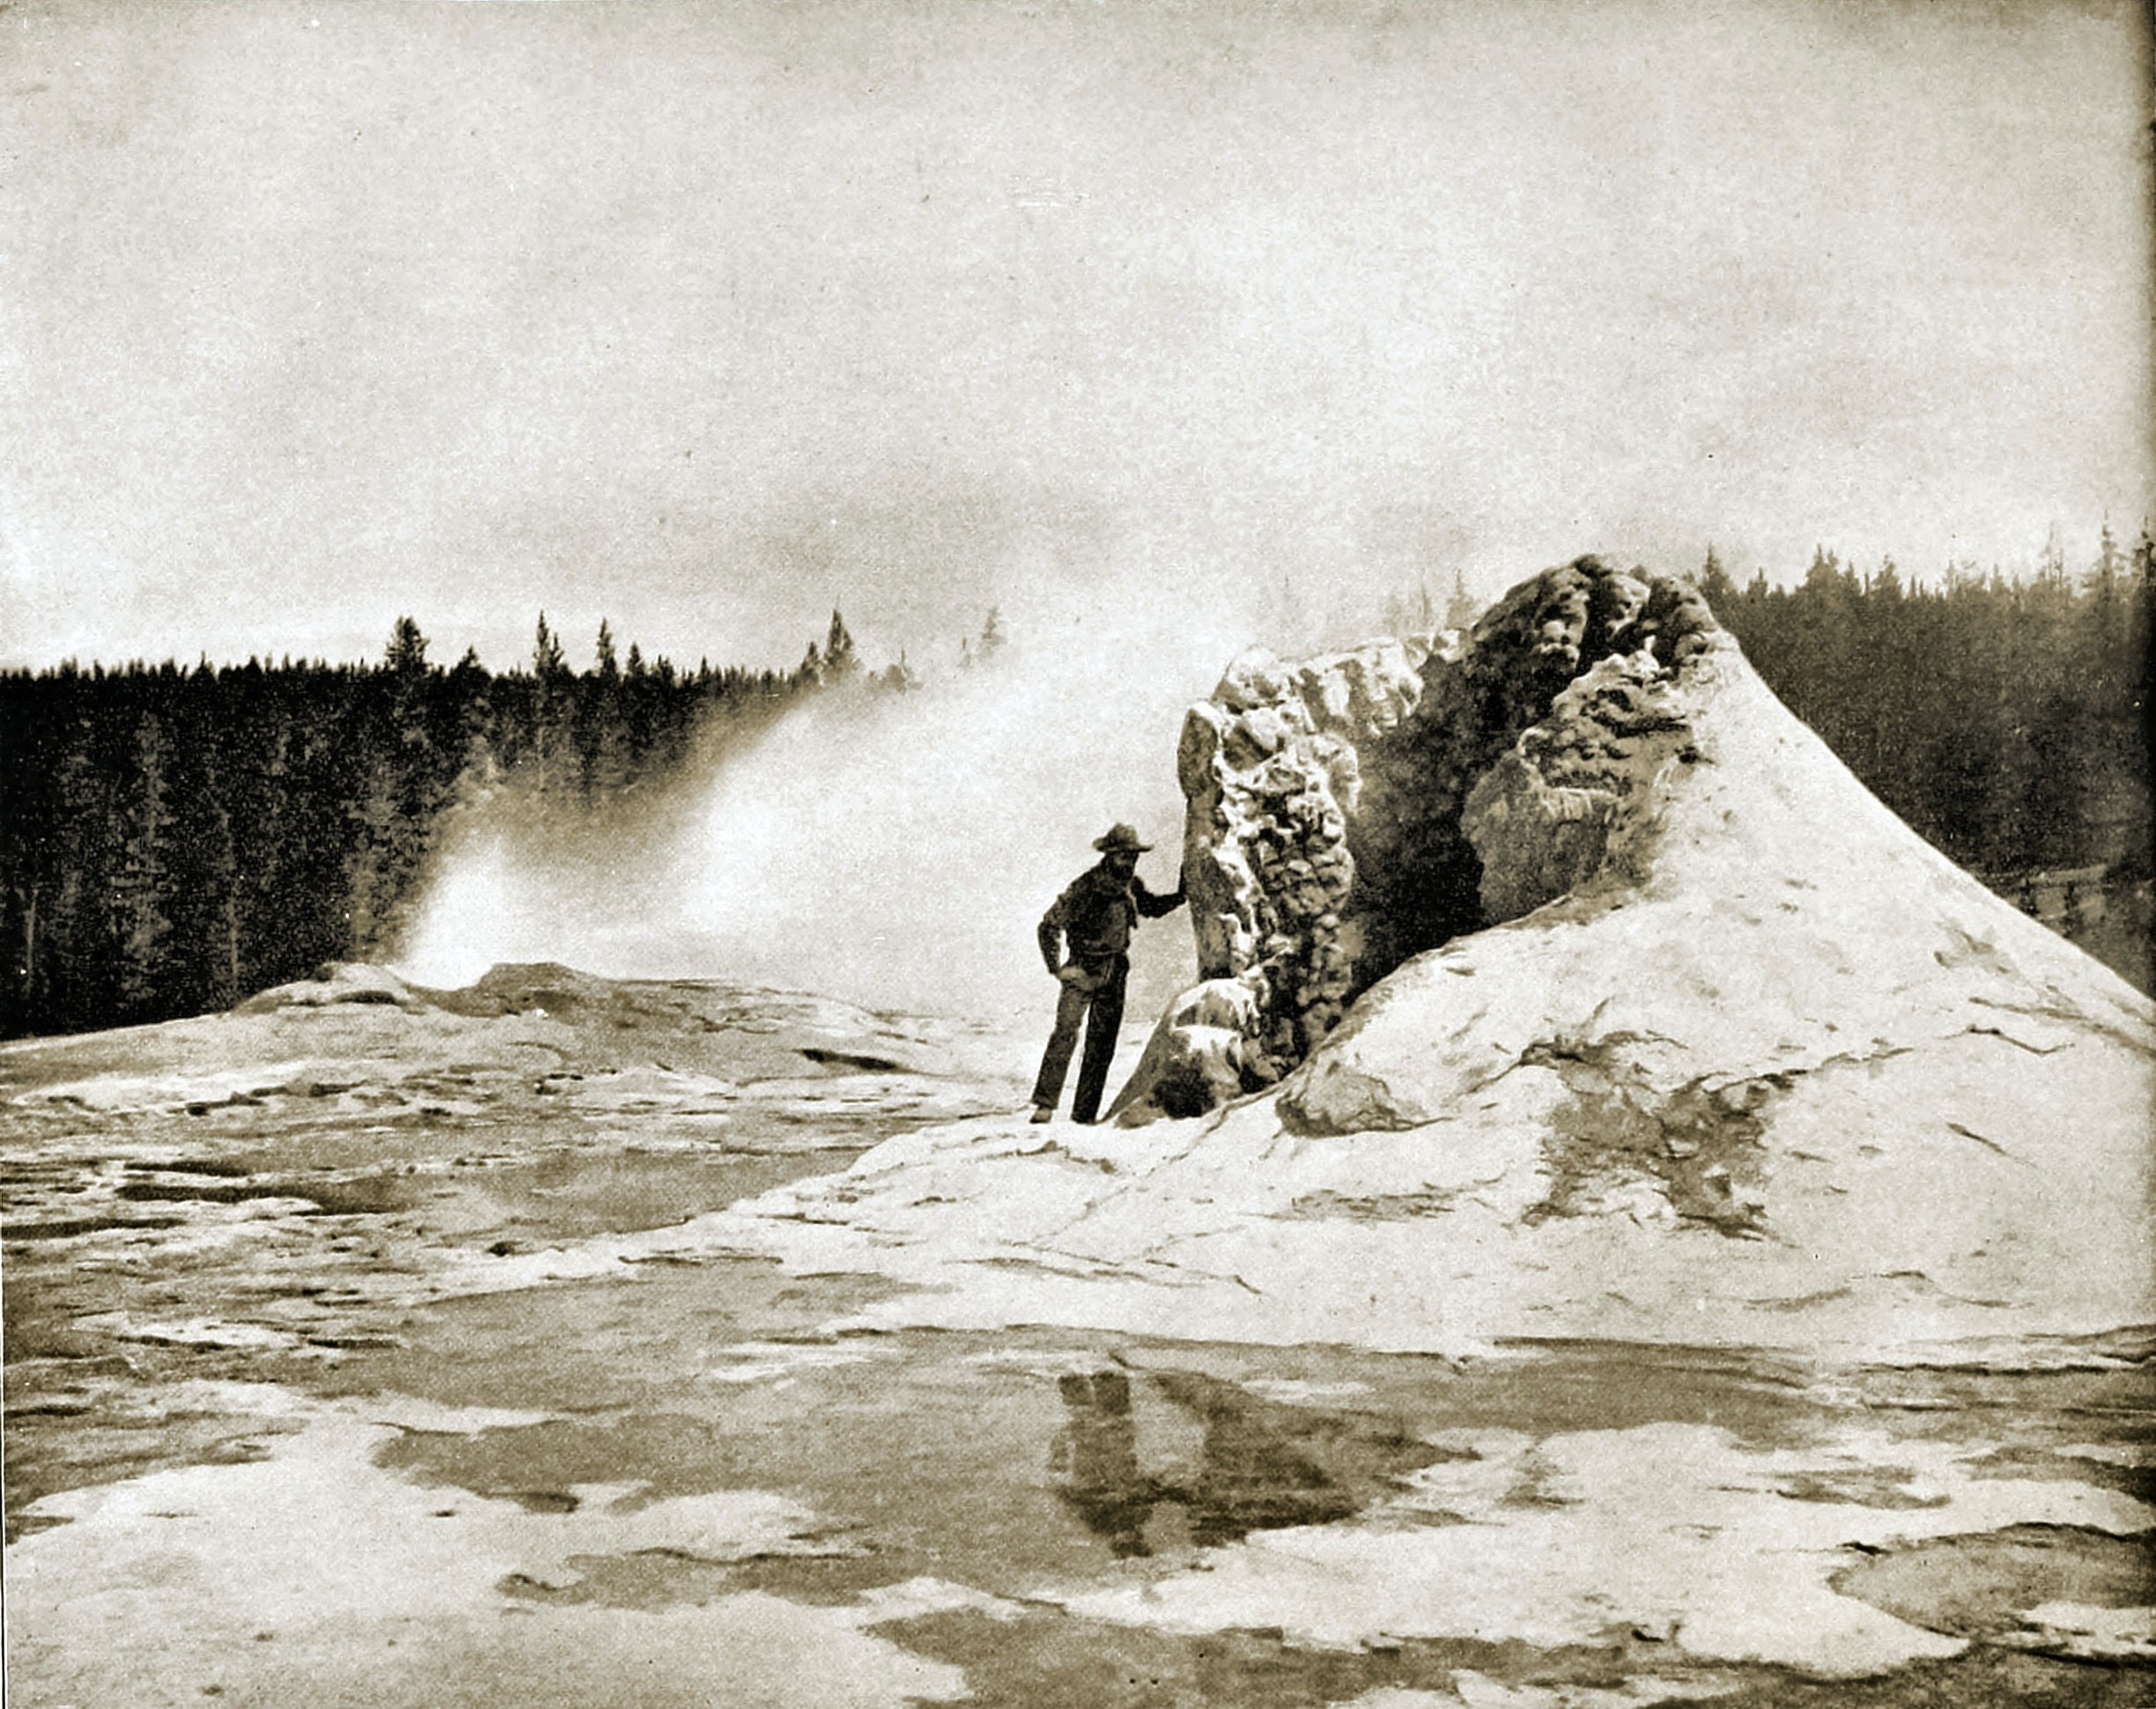 Giant Geyser, Yellowstone National Park, USA about 1892